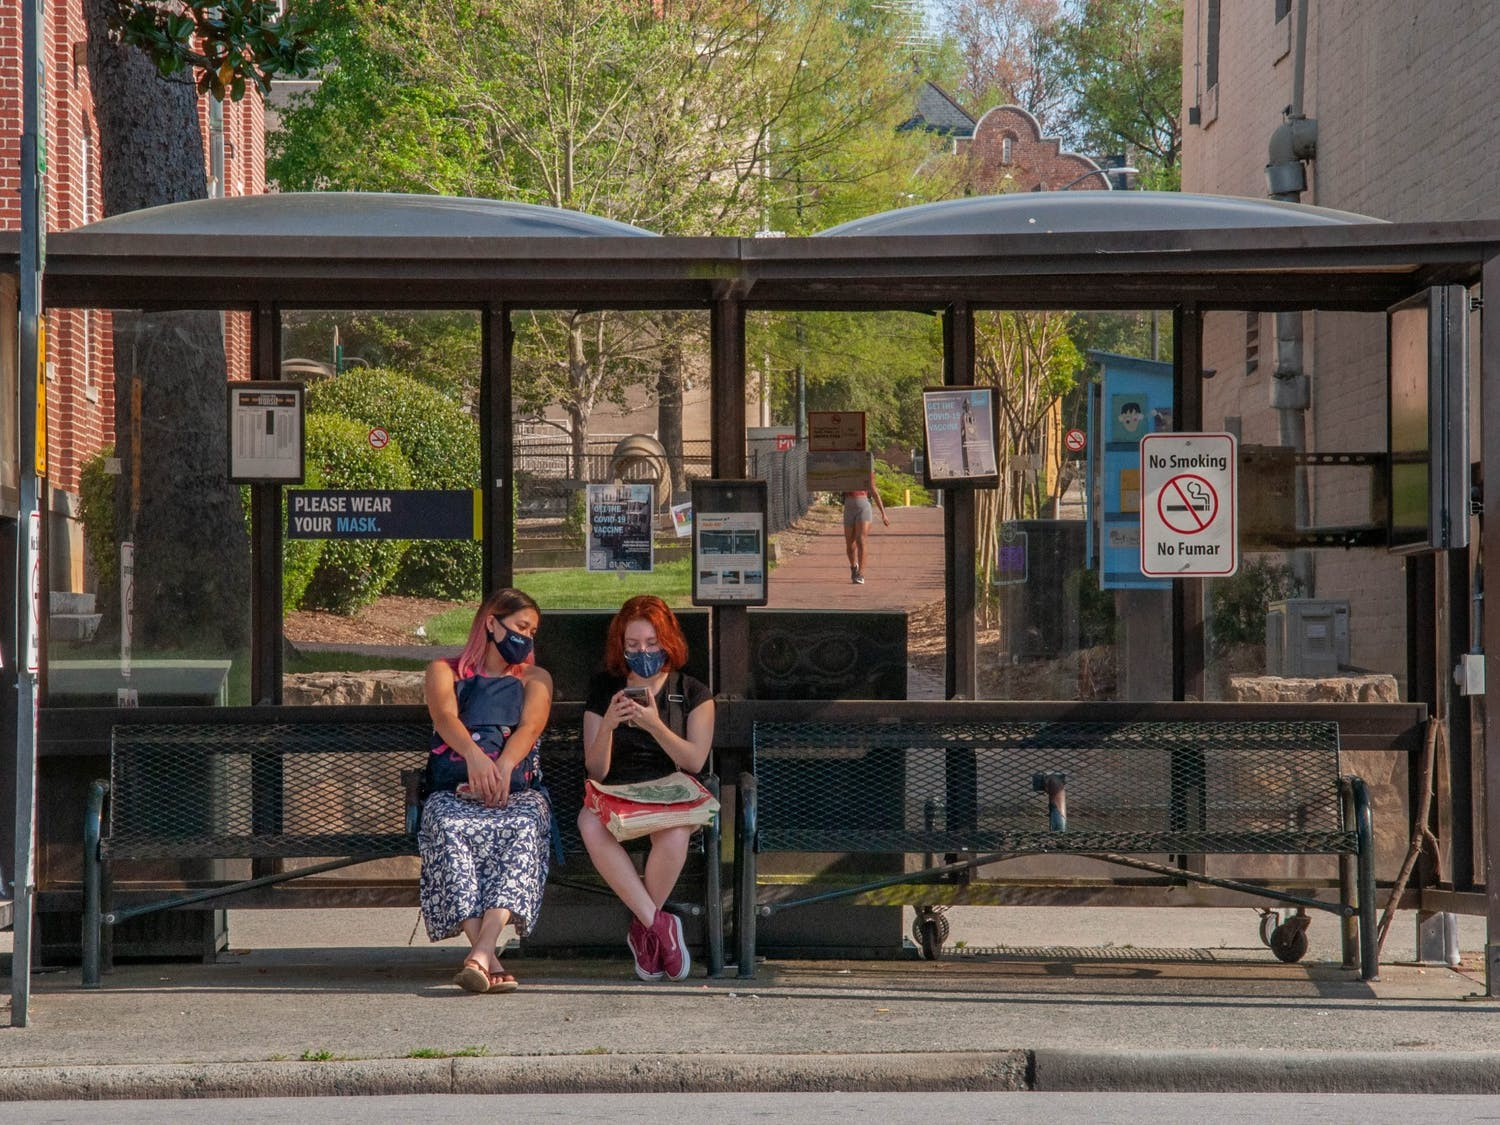 Two students sit at the bus stop on Franklin Street in Chapel Hill on April 13, 2021.